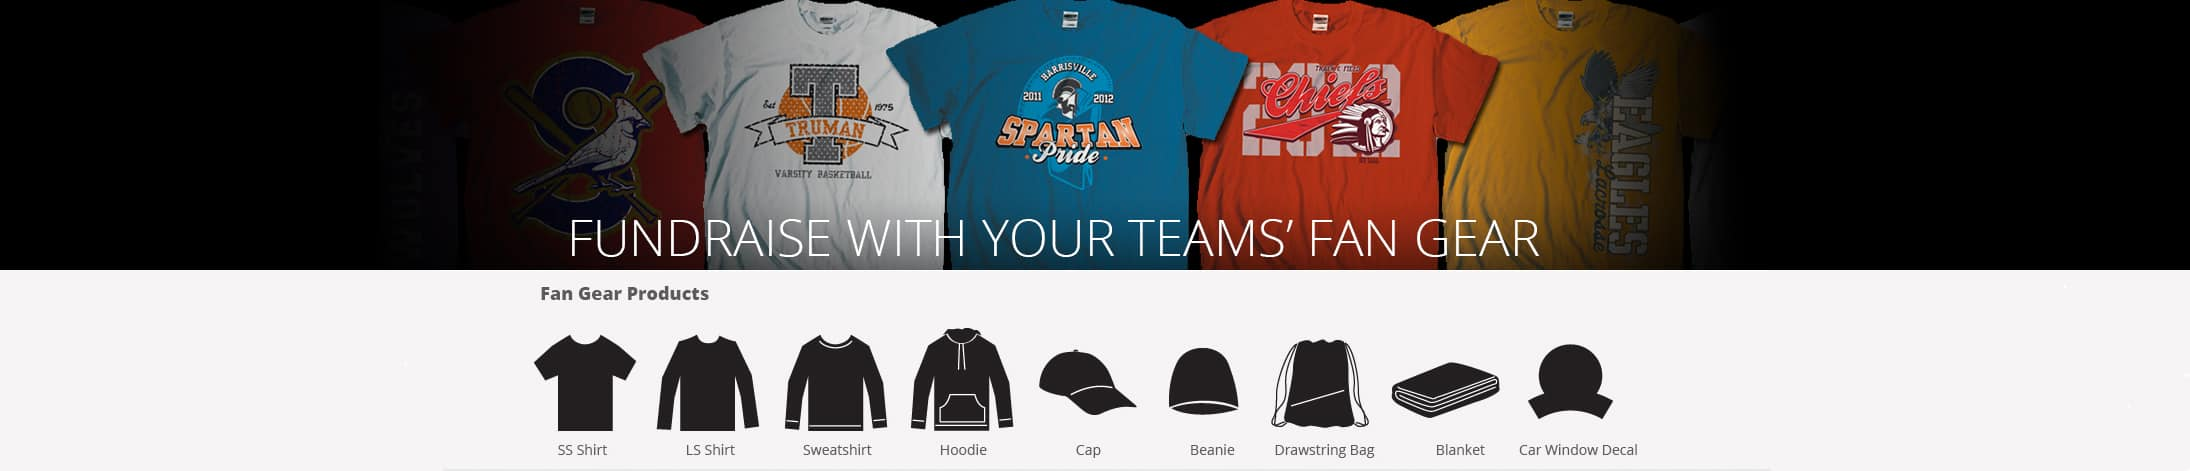 Fan-Gear-for-teams